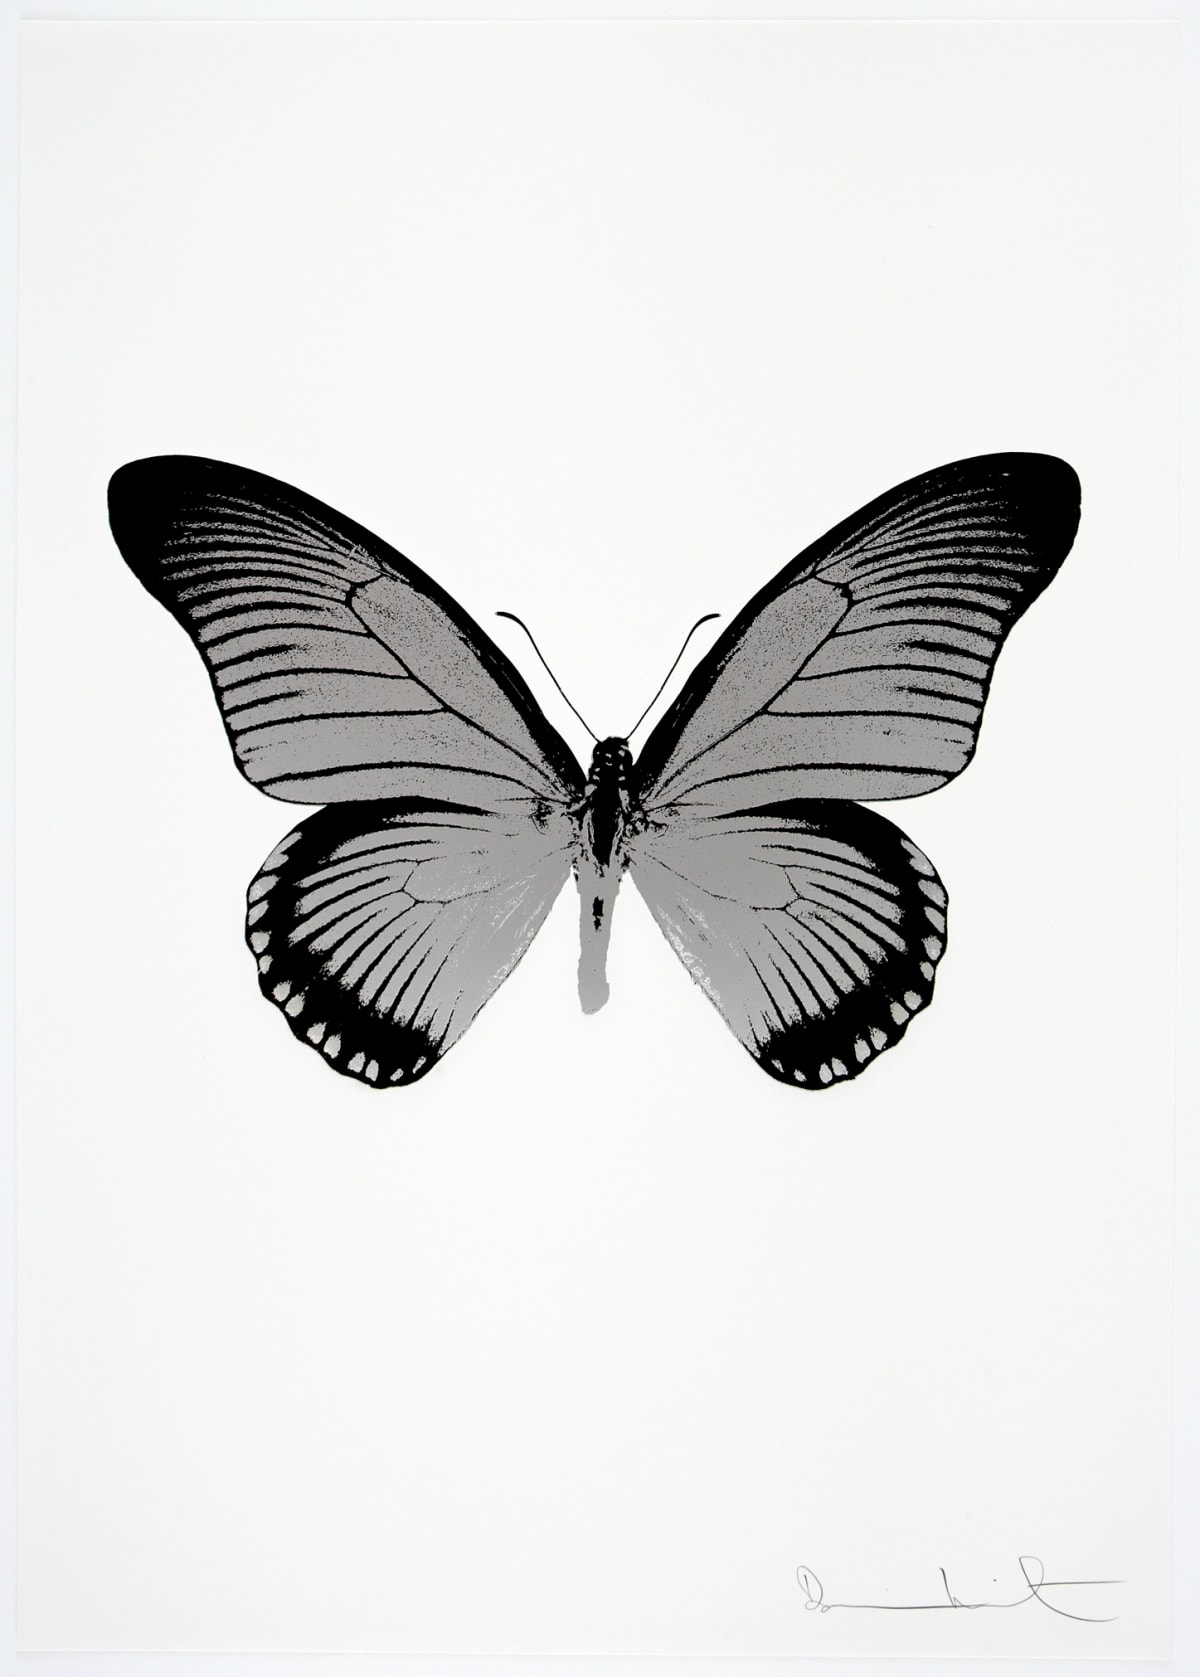 Damien Hirst The Souls IV - Silver Gloss/Raven Black Damien Hirst butterfly foil print for sale Damien Hirst print for sale , 2010 2 colour foil block on 300gsm Arches 88 archival paper. Signed and numbered. Published by Paul Stolper and Other Criteria 72 x 51cm OC7999 / 1418-22 Edition of 15